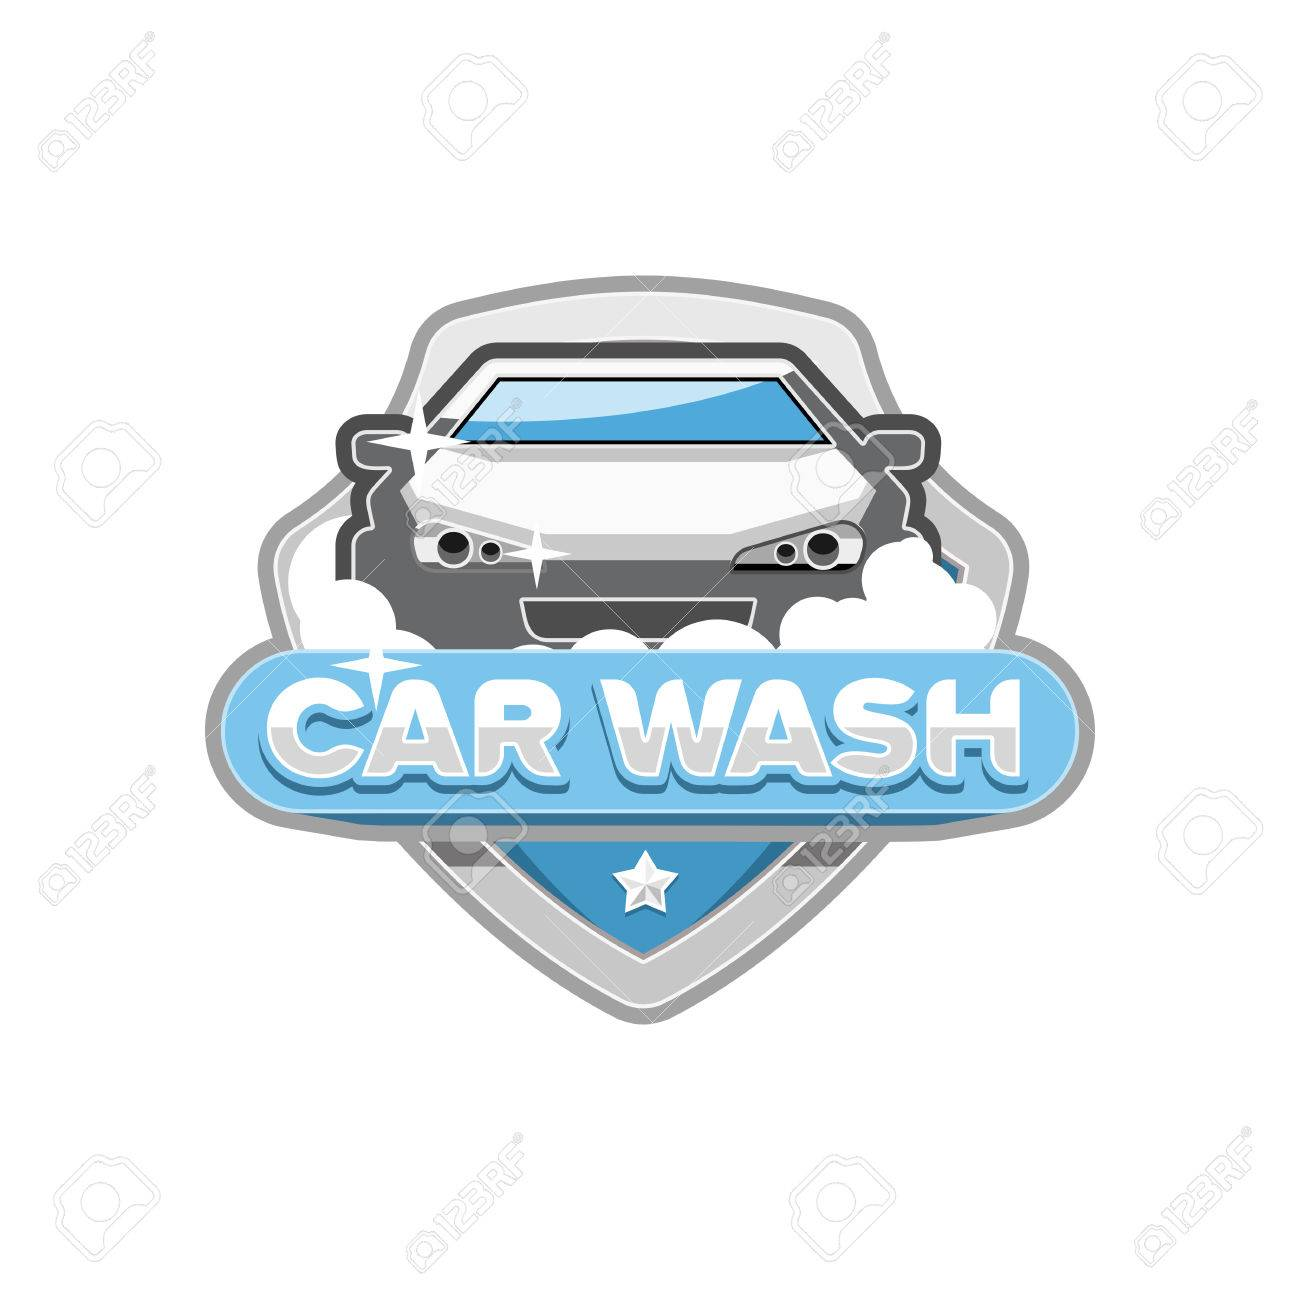 Car Wash Logo Design Template Royalty Free Cliparts Vectors And